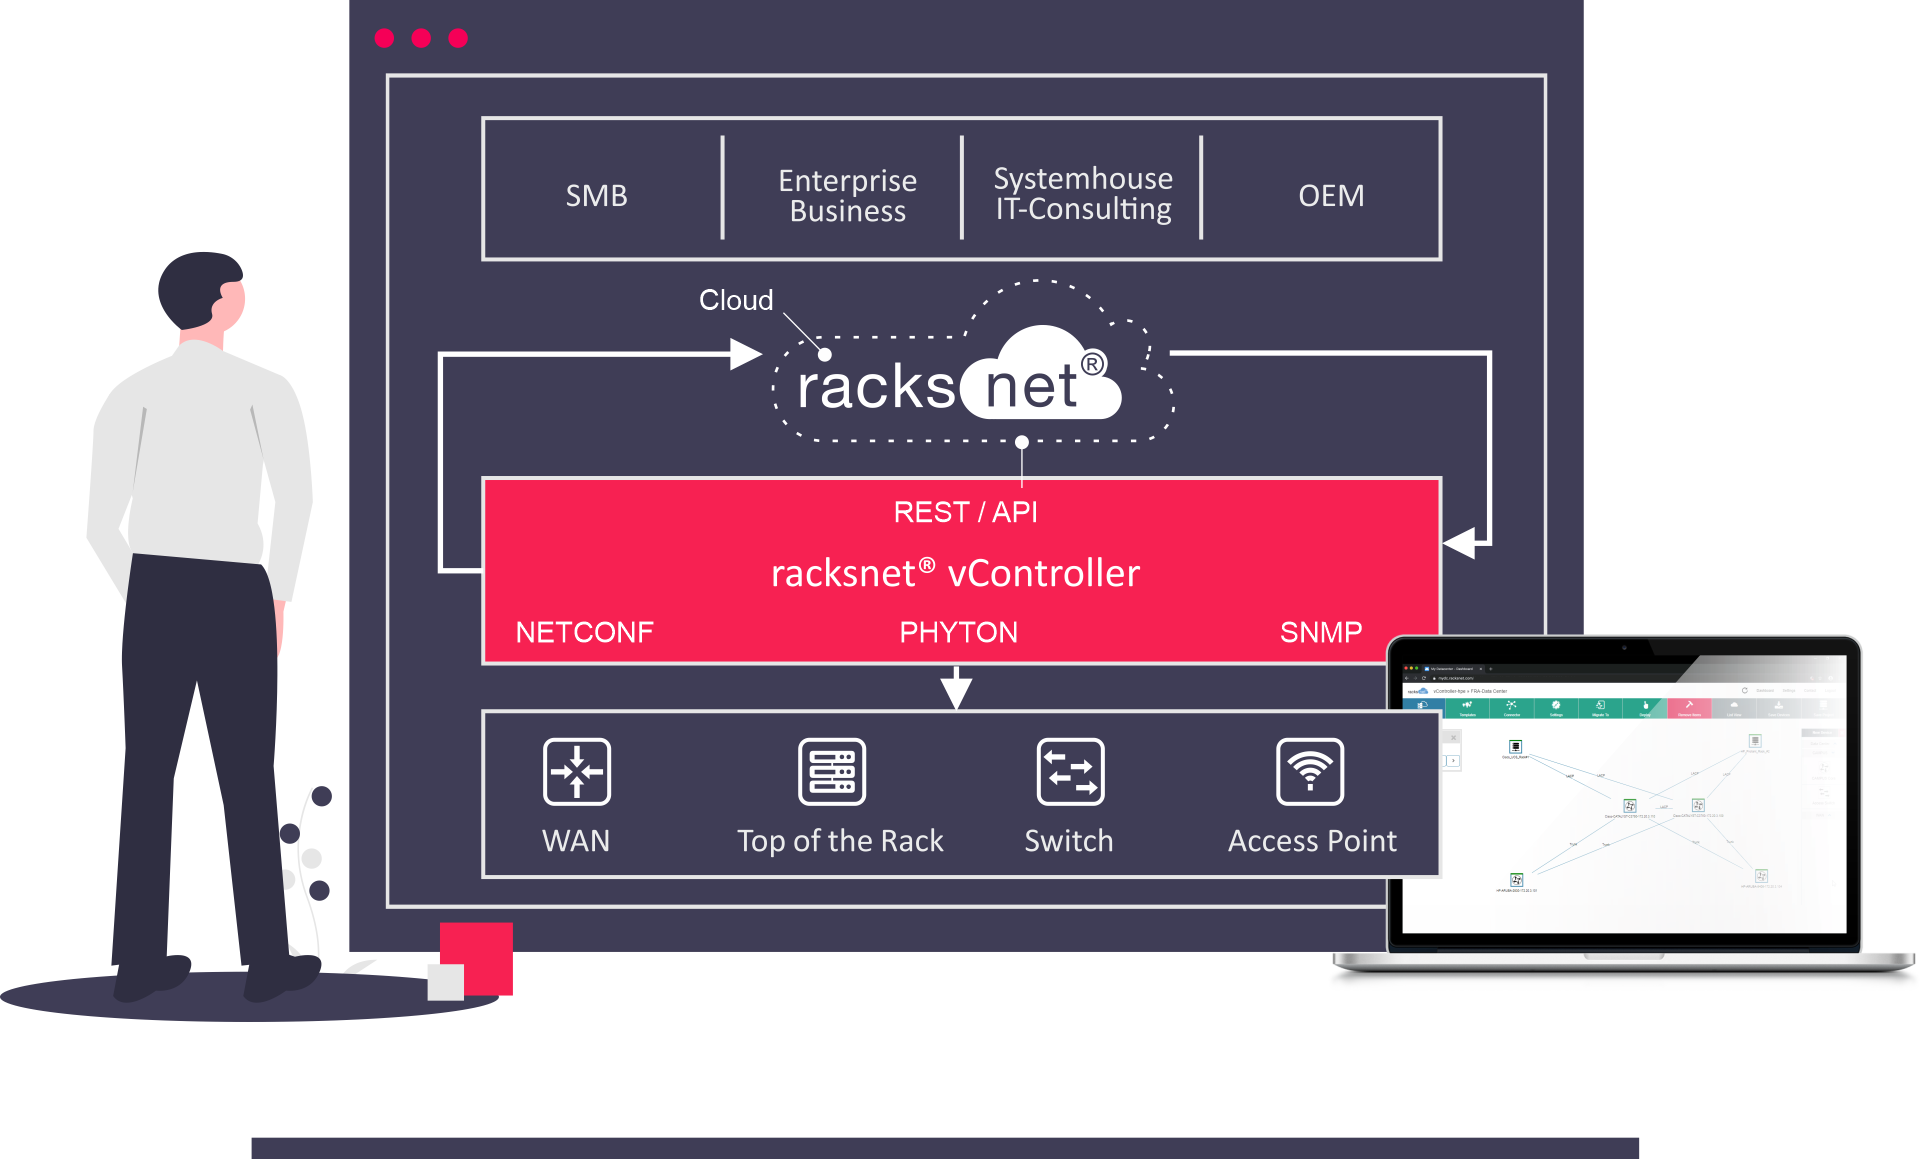 Network automation with racksnet in a schematic overview